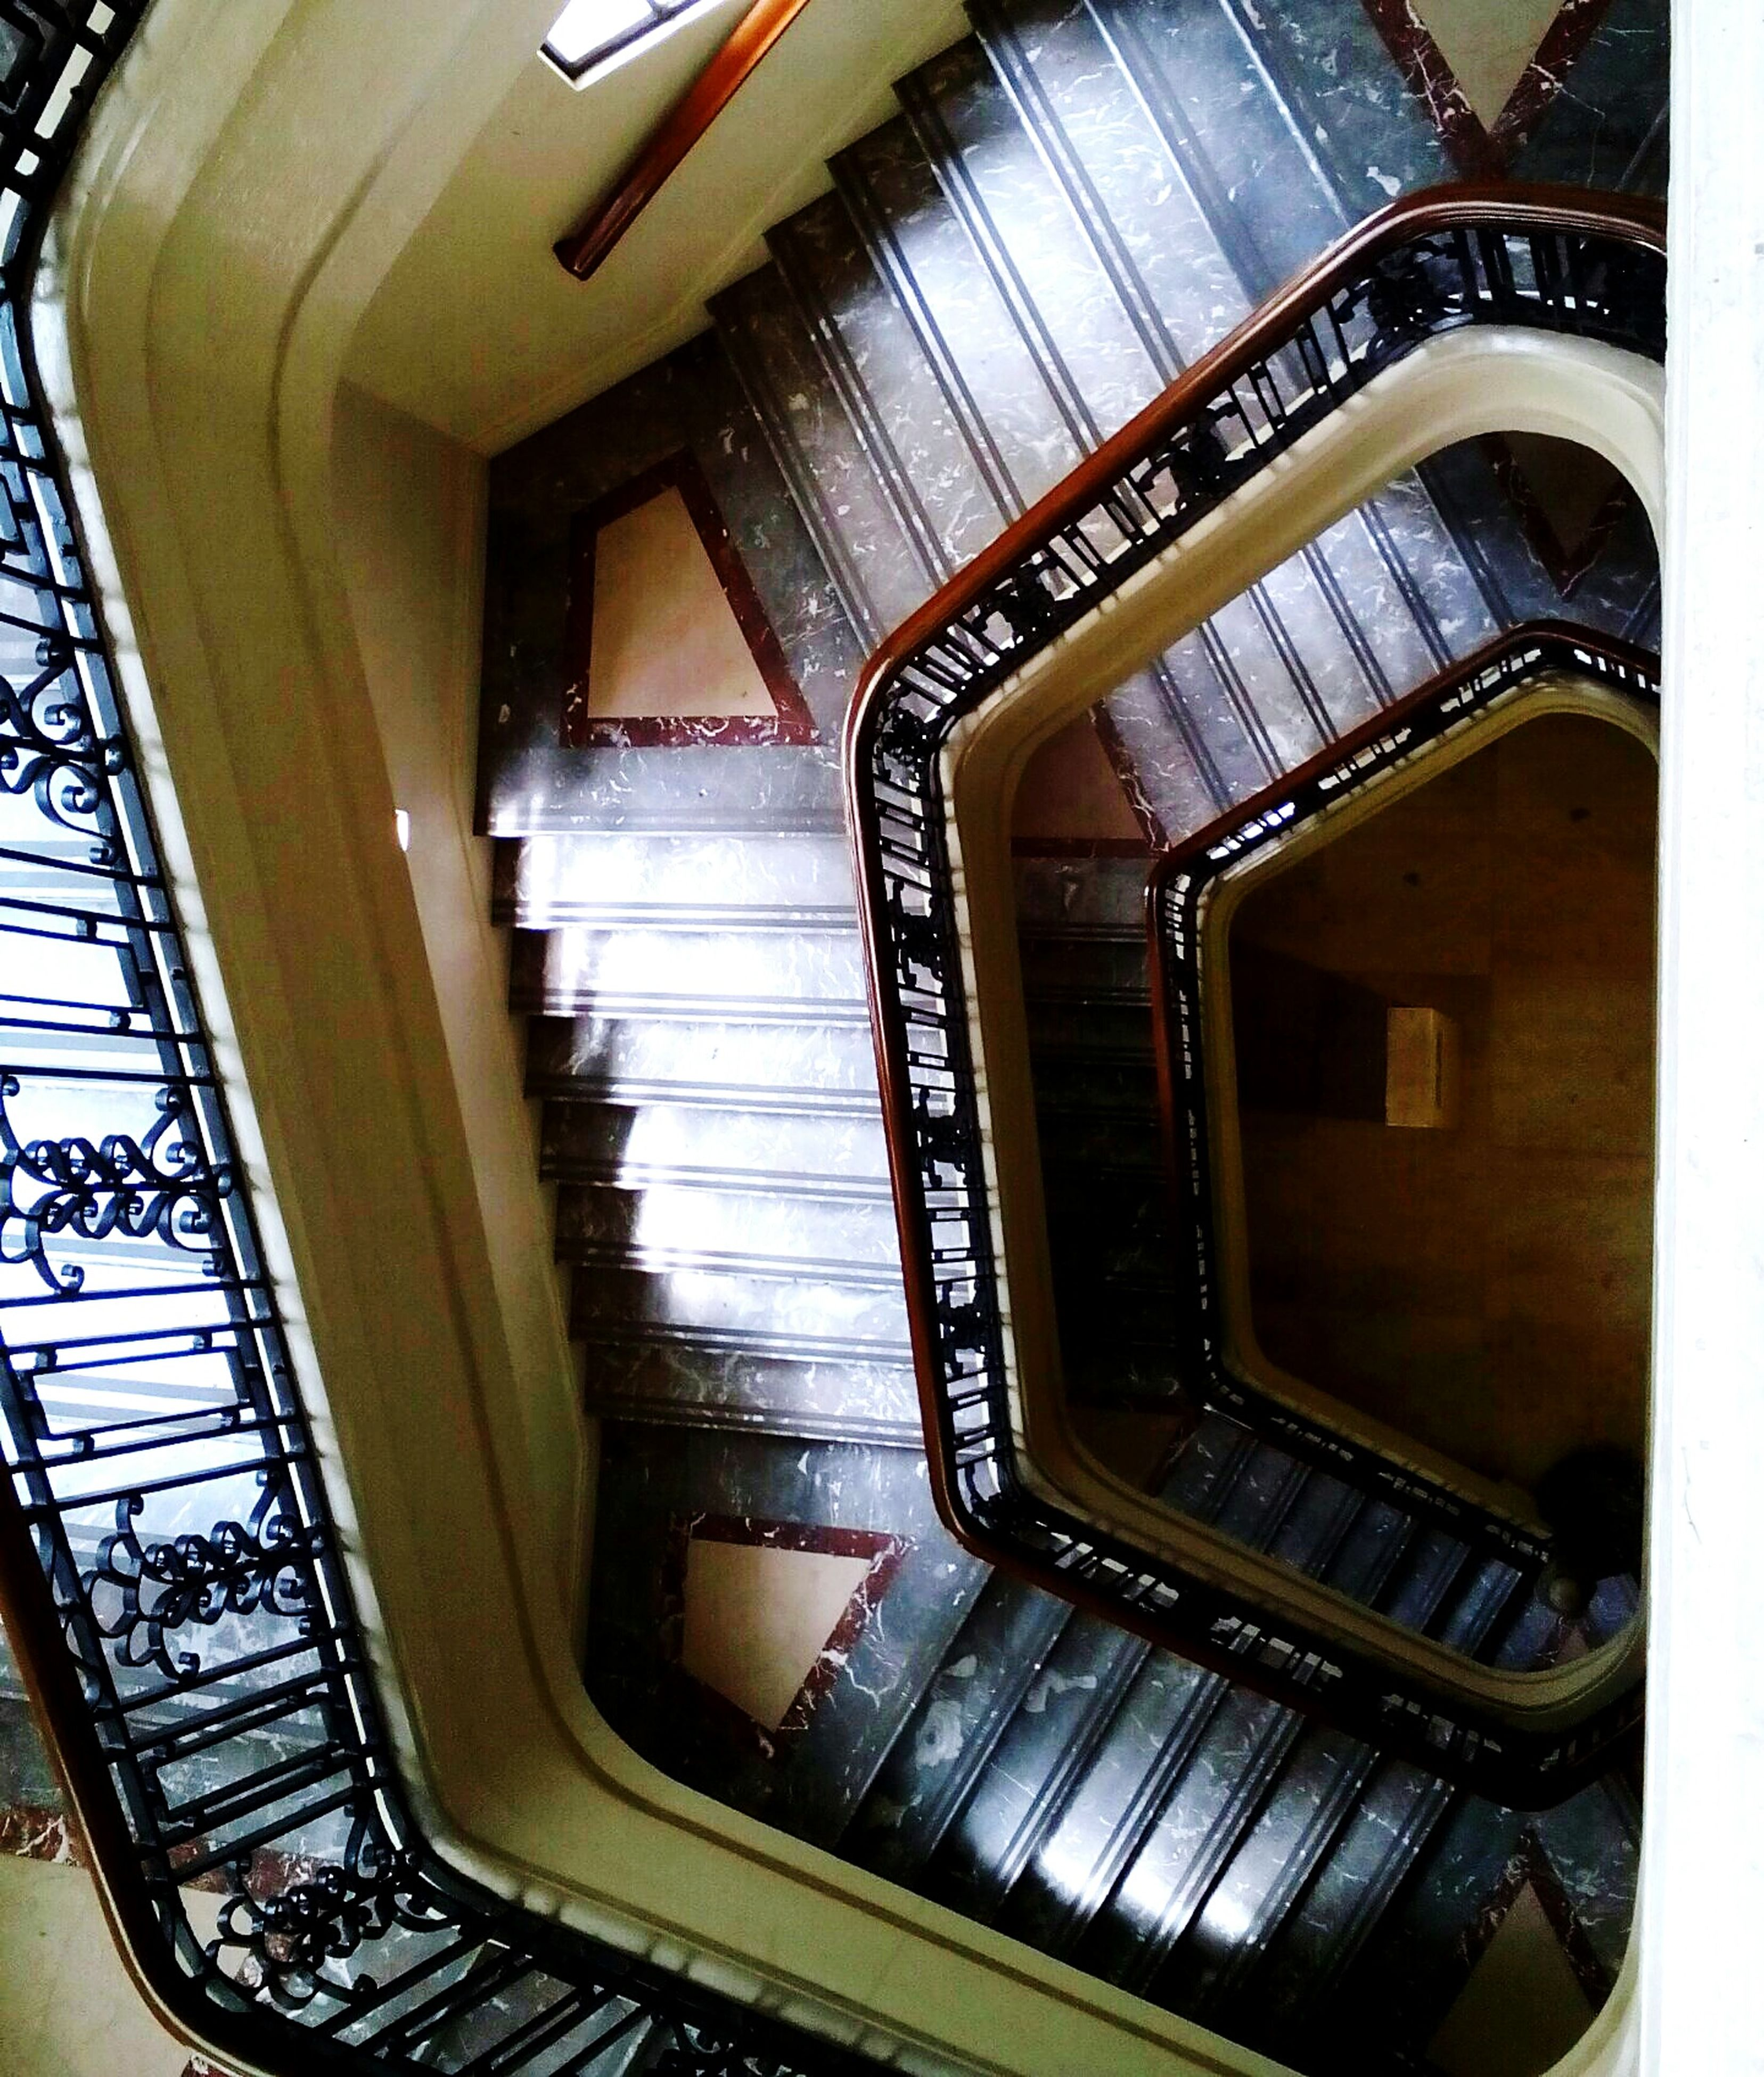 indoors, railing, staircase, steps and staircases, steps, spiral staircase, spiral, hand rail, day, steps and staircase, diminishing perspective, railings, no people, building story, interior